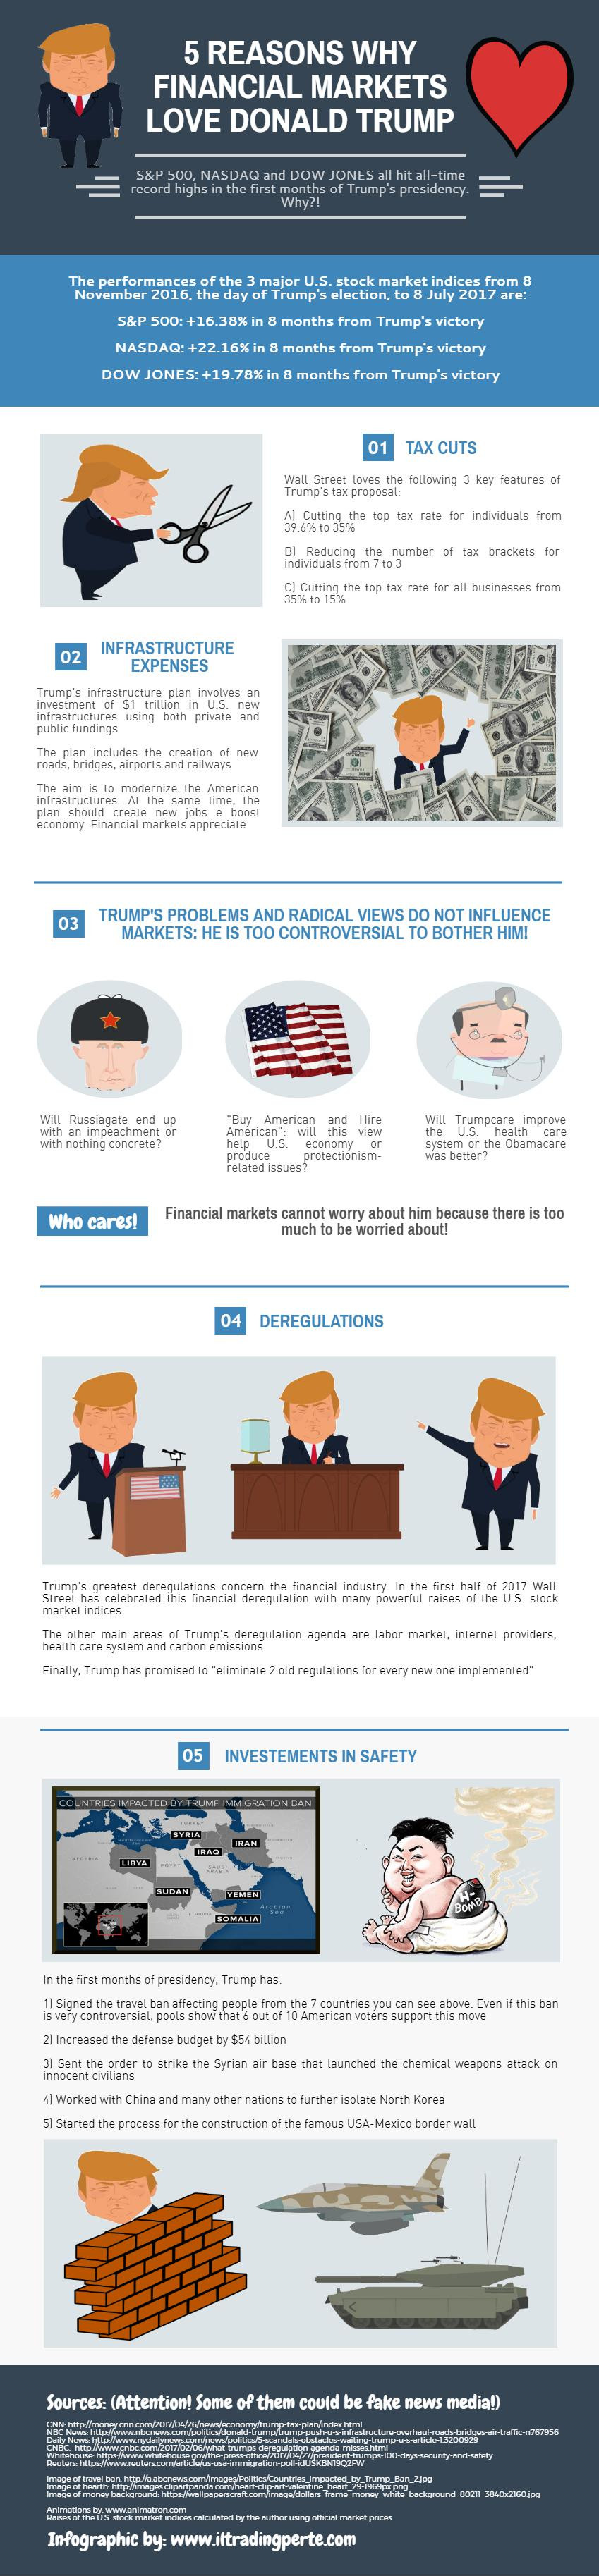 5 Reasons Why Financial Markets Love Donald Trump Infographic